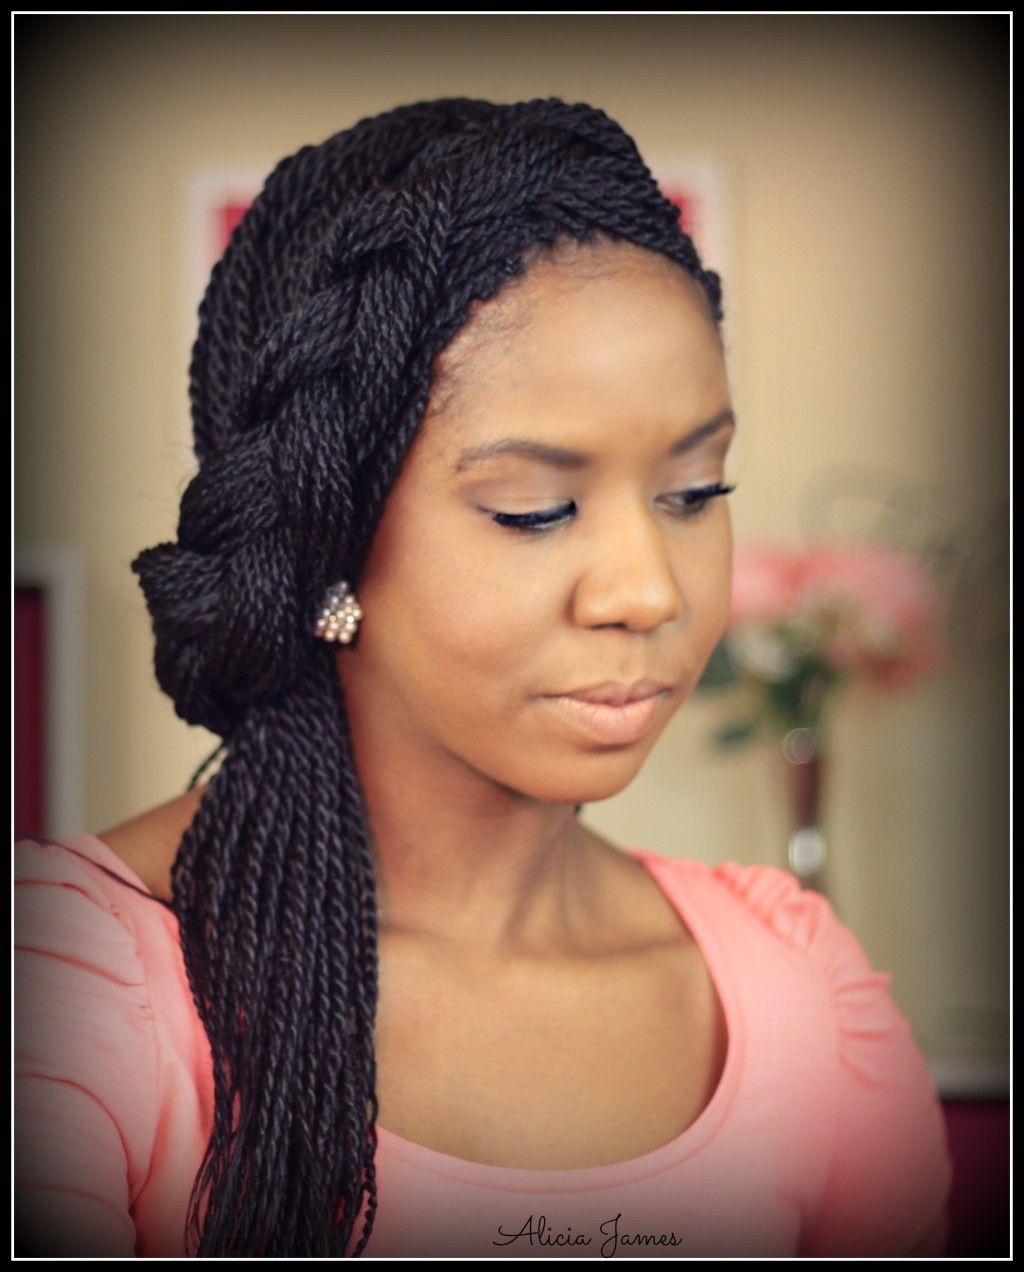 Outstanding 1000 Images About Hair Styles On Pinterest Protective Styles Short Hairstyles For Black Women Fulllsitofus